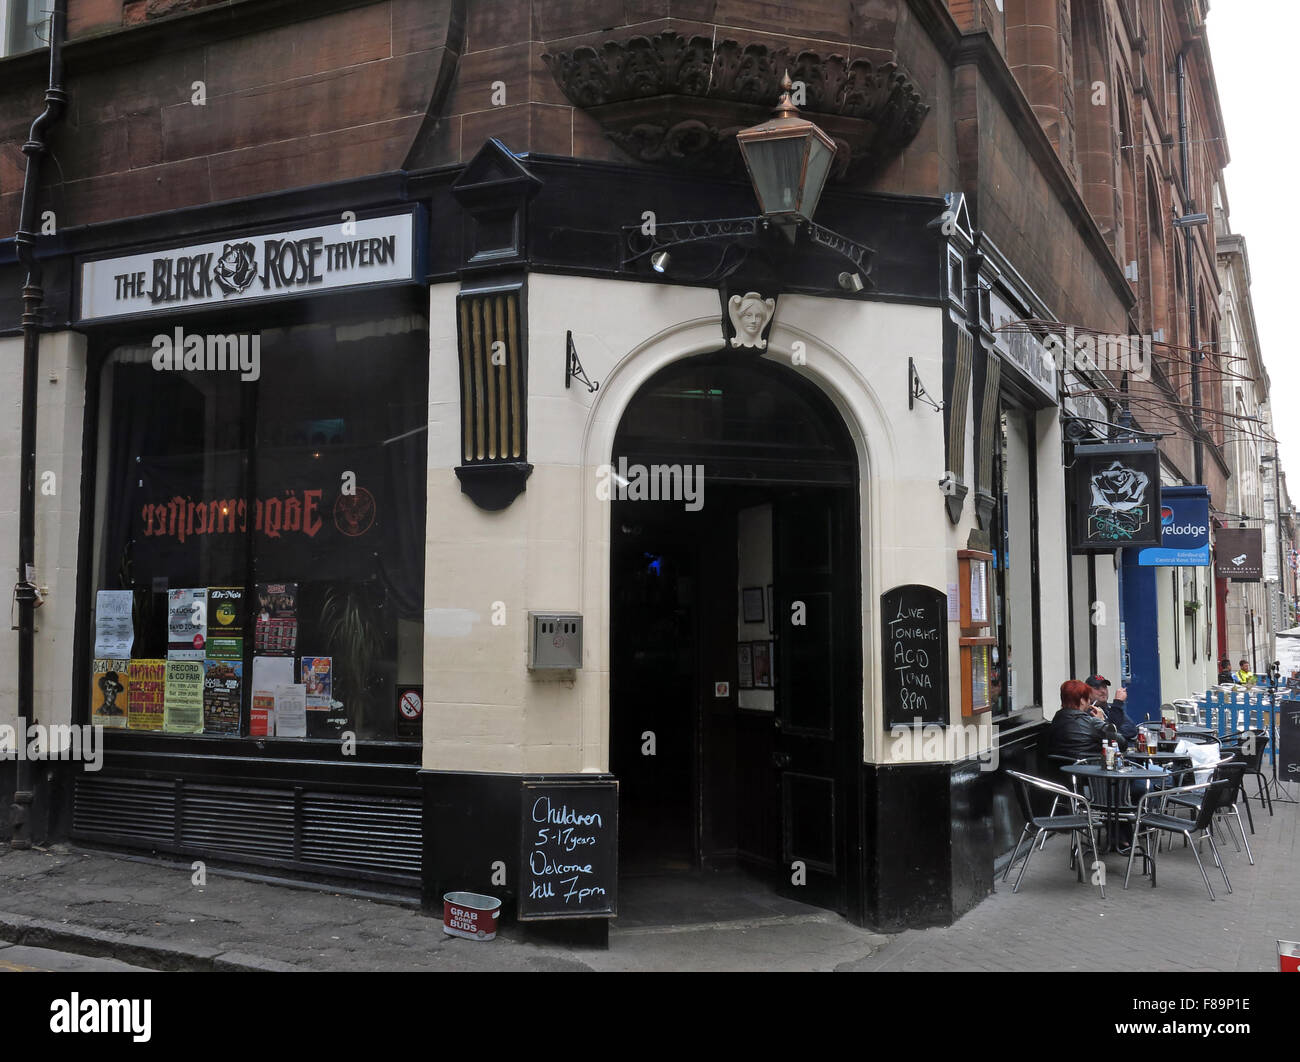 Pubs,stag,night,hen,nights,location,for,area,EDN,narrow,new,pedestrian,pedestrianised,scottish,shopping,st,street,town,Black,Rose,Tavern,rose street,Rose st,Black Rose Tavern,GoTonySmith,drinking,culture,alcoholism,alcoholics,AA,outside,street,history,historic,Buy Pictures of,Buy Images Of,Edinburgh Pubs,Edinburgh Pub